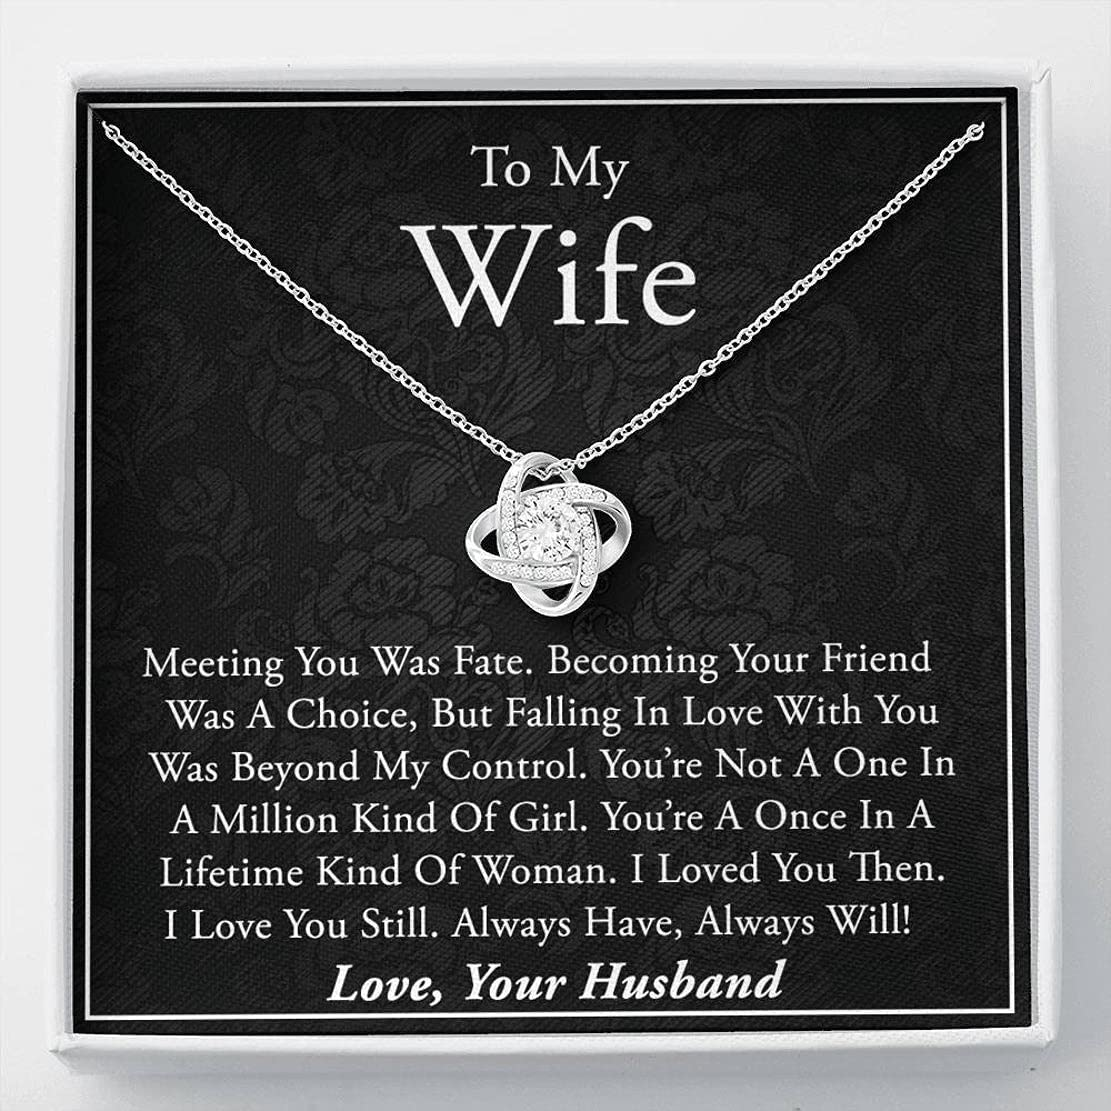 Surprise Gifts To My Wife Necklace - Popular Ranking TOP15 product Gift for In Lifetime a Wif